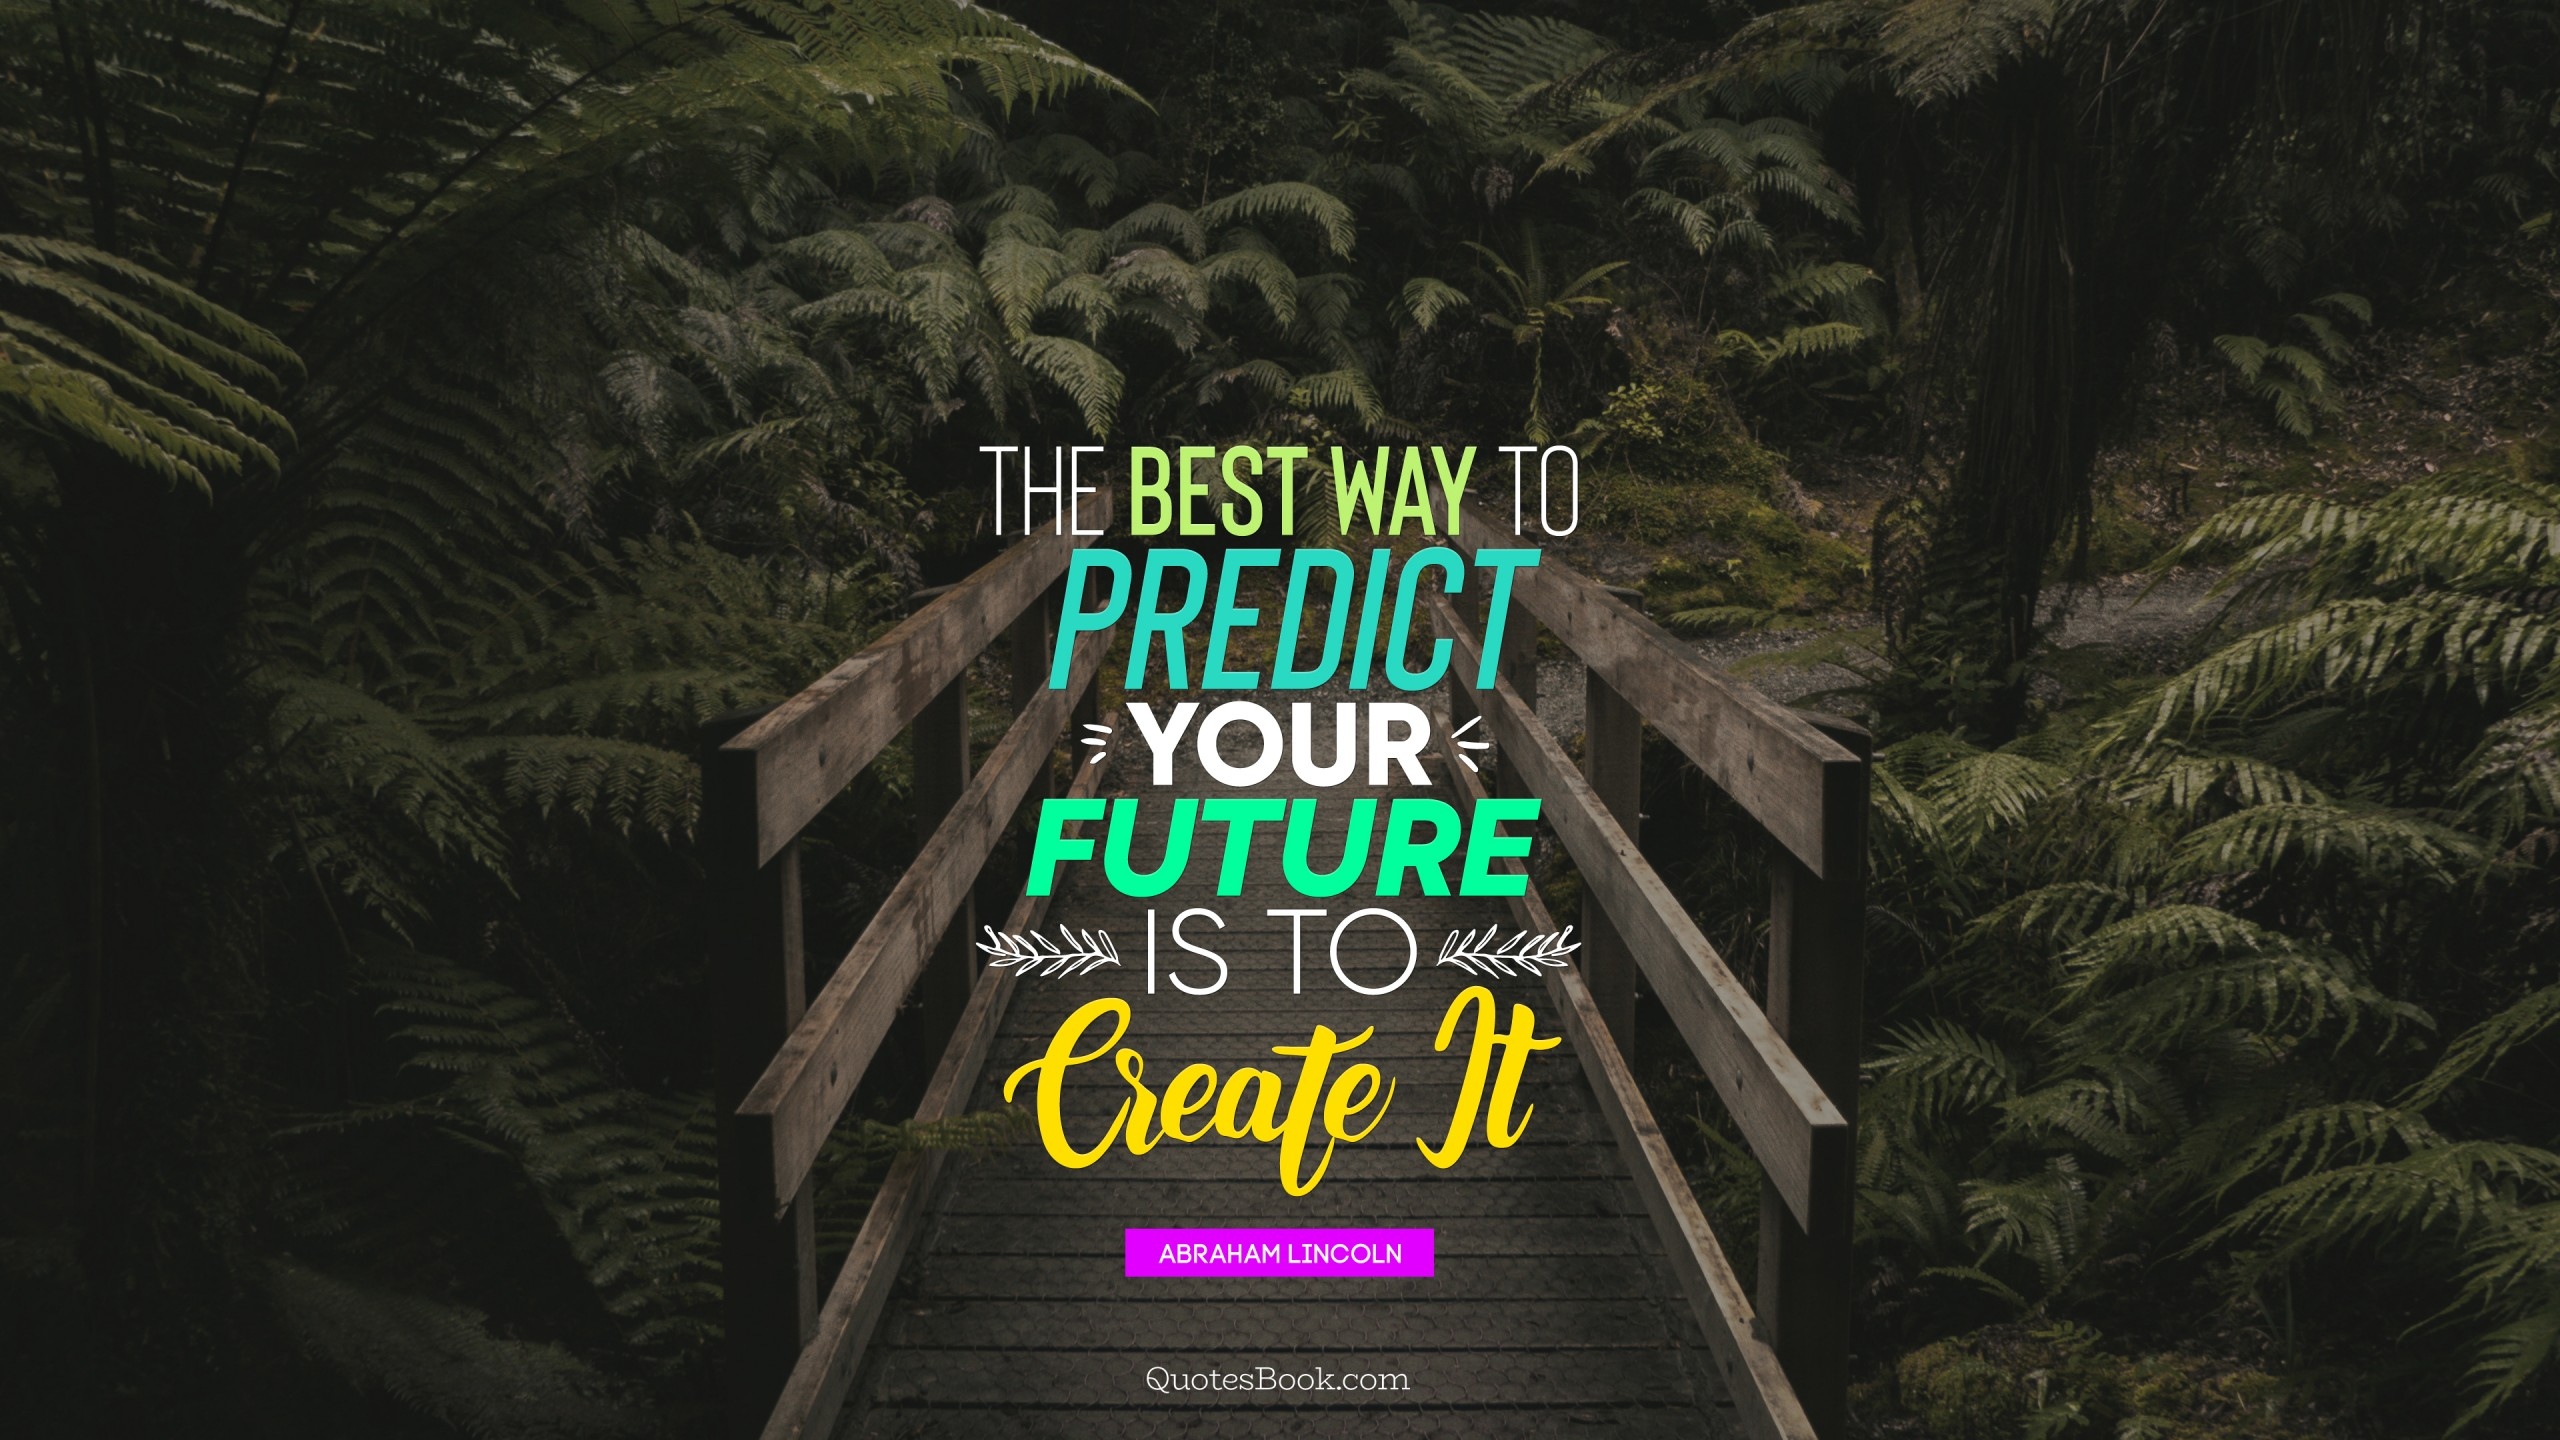 God Quotes Wallpaper Hd The Best Way To Predict Your Future Is To Create It